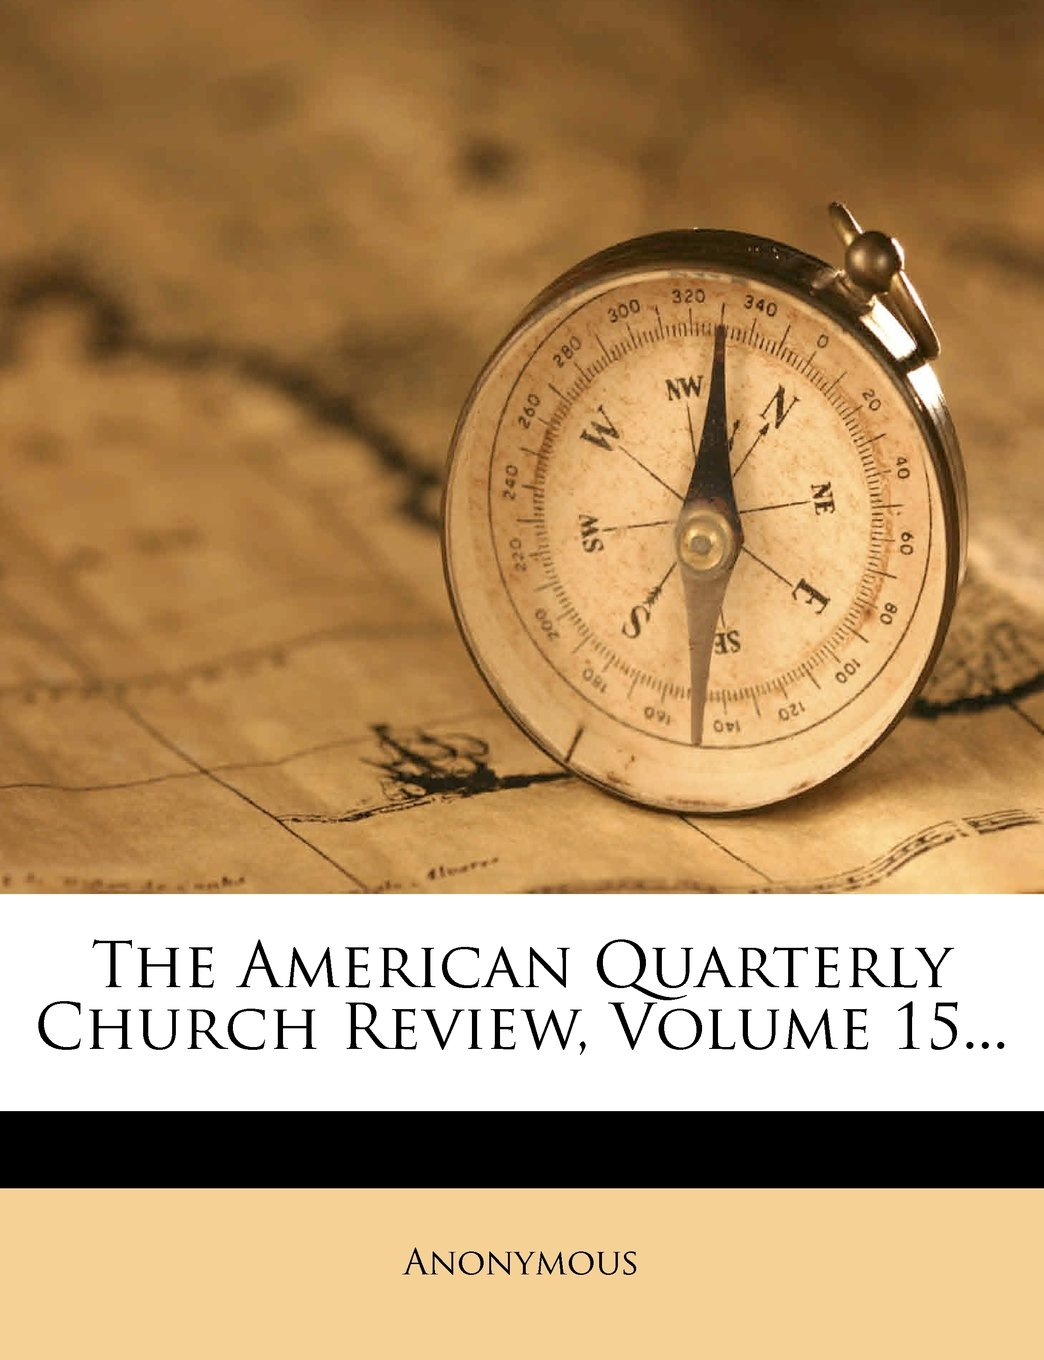 The American Quarterly Church Review, Volume 15... ebook